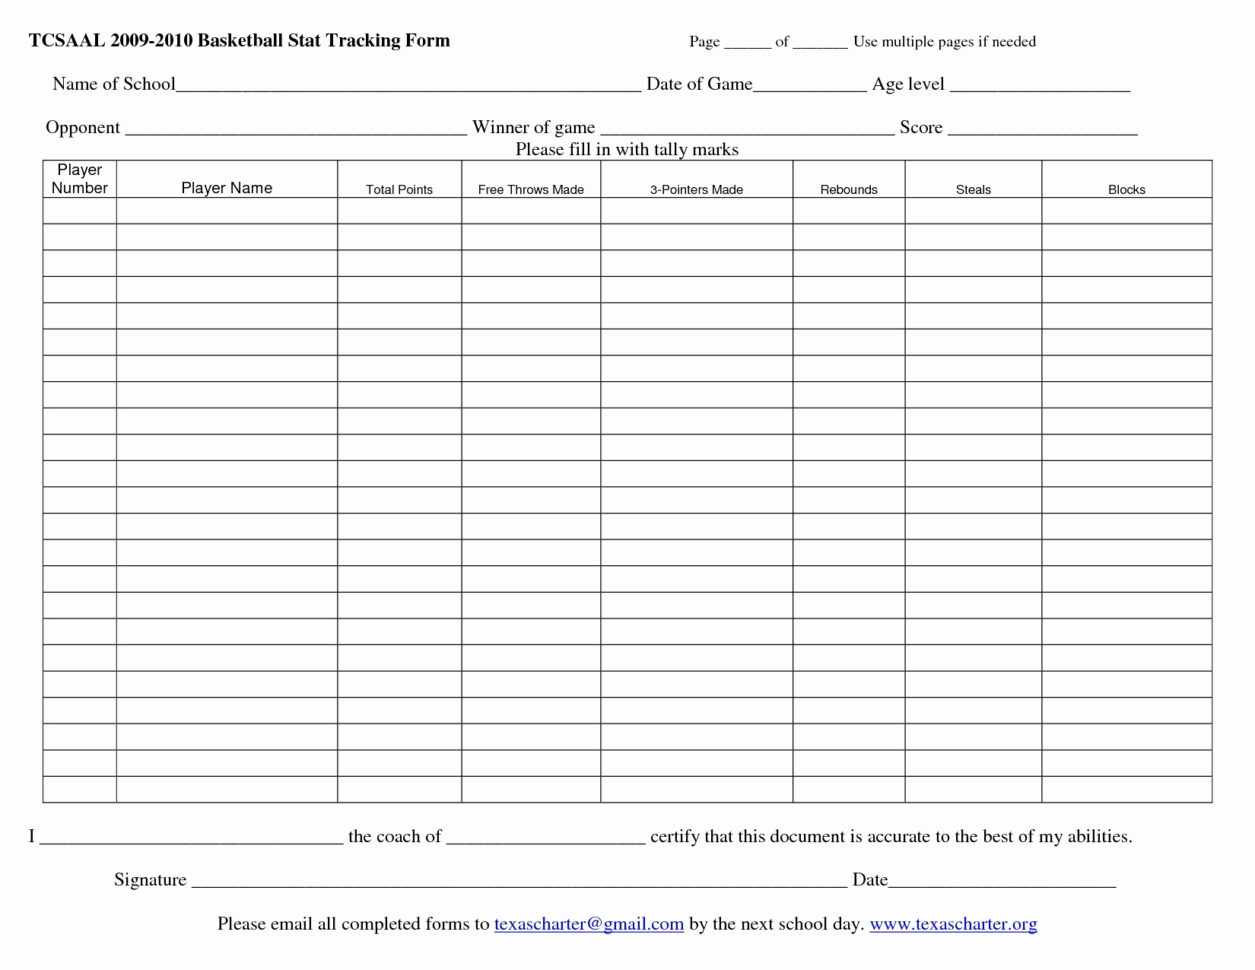 Football Player Stats Spreadsheet Template Regarding Printable Basketball Stat Sheet Template As Well Free With Plus